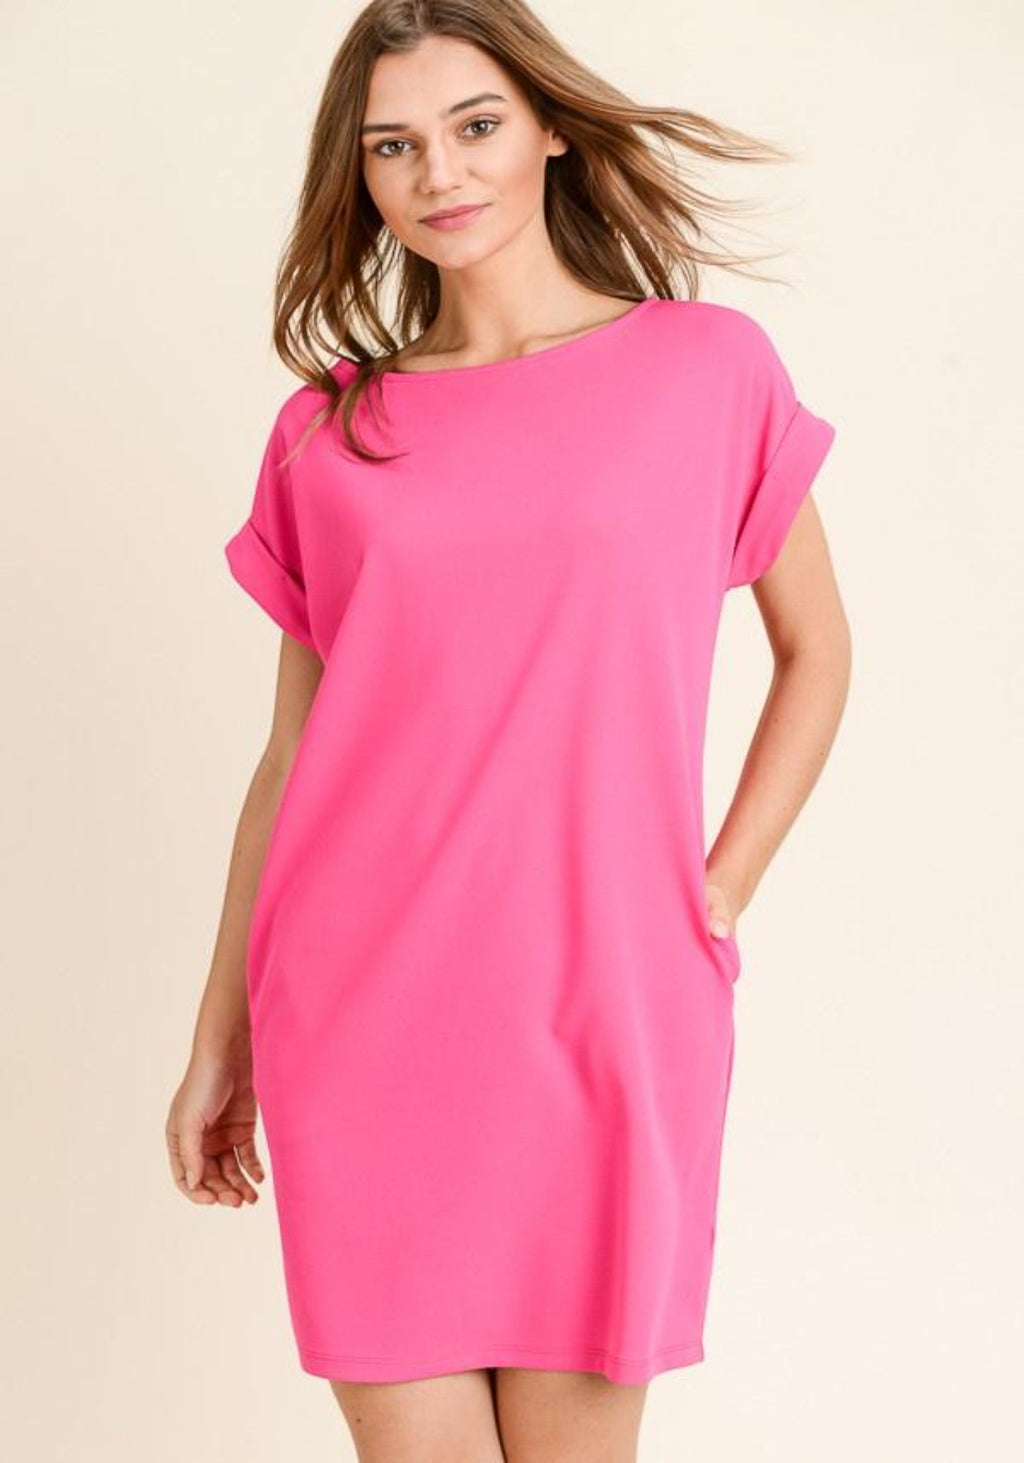 bella lucca pink fuchsia shift dress